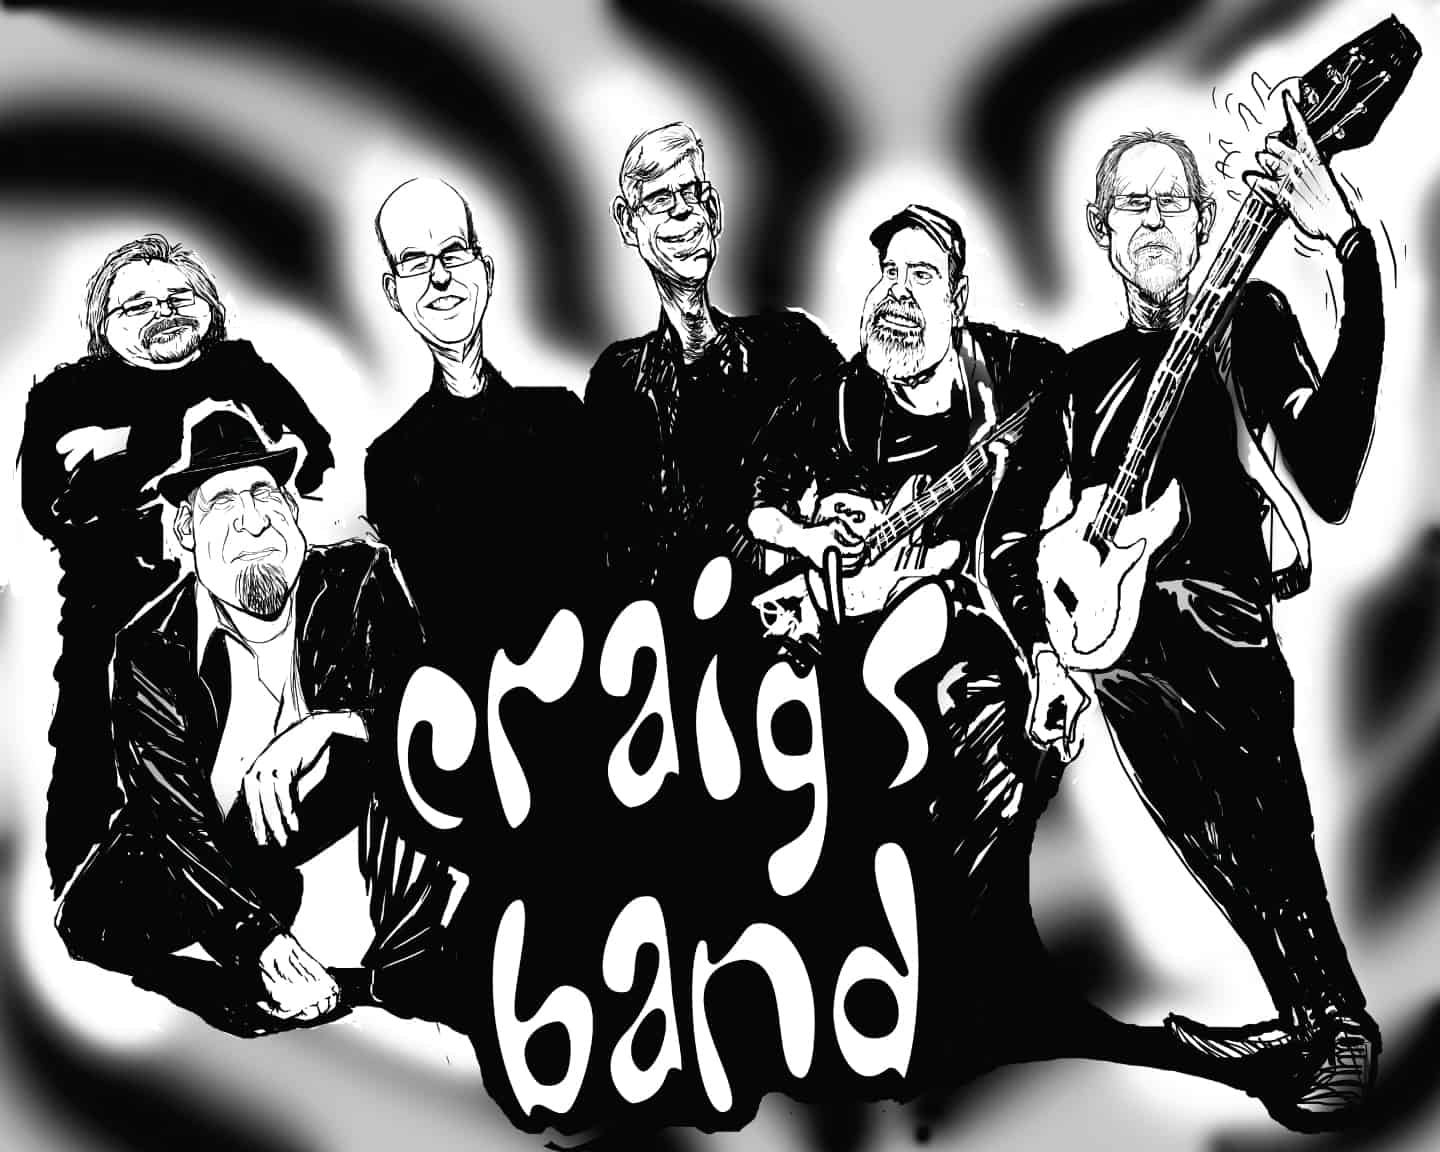 Custom Digital Caricature By San Diego Caricaturist Cameron Canales Used for Band T-Shirts